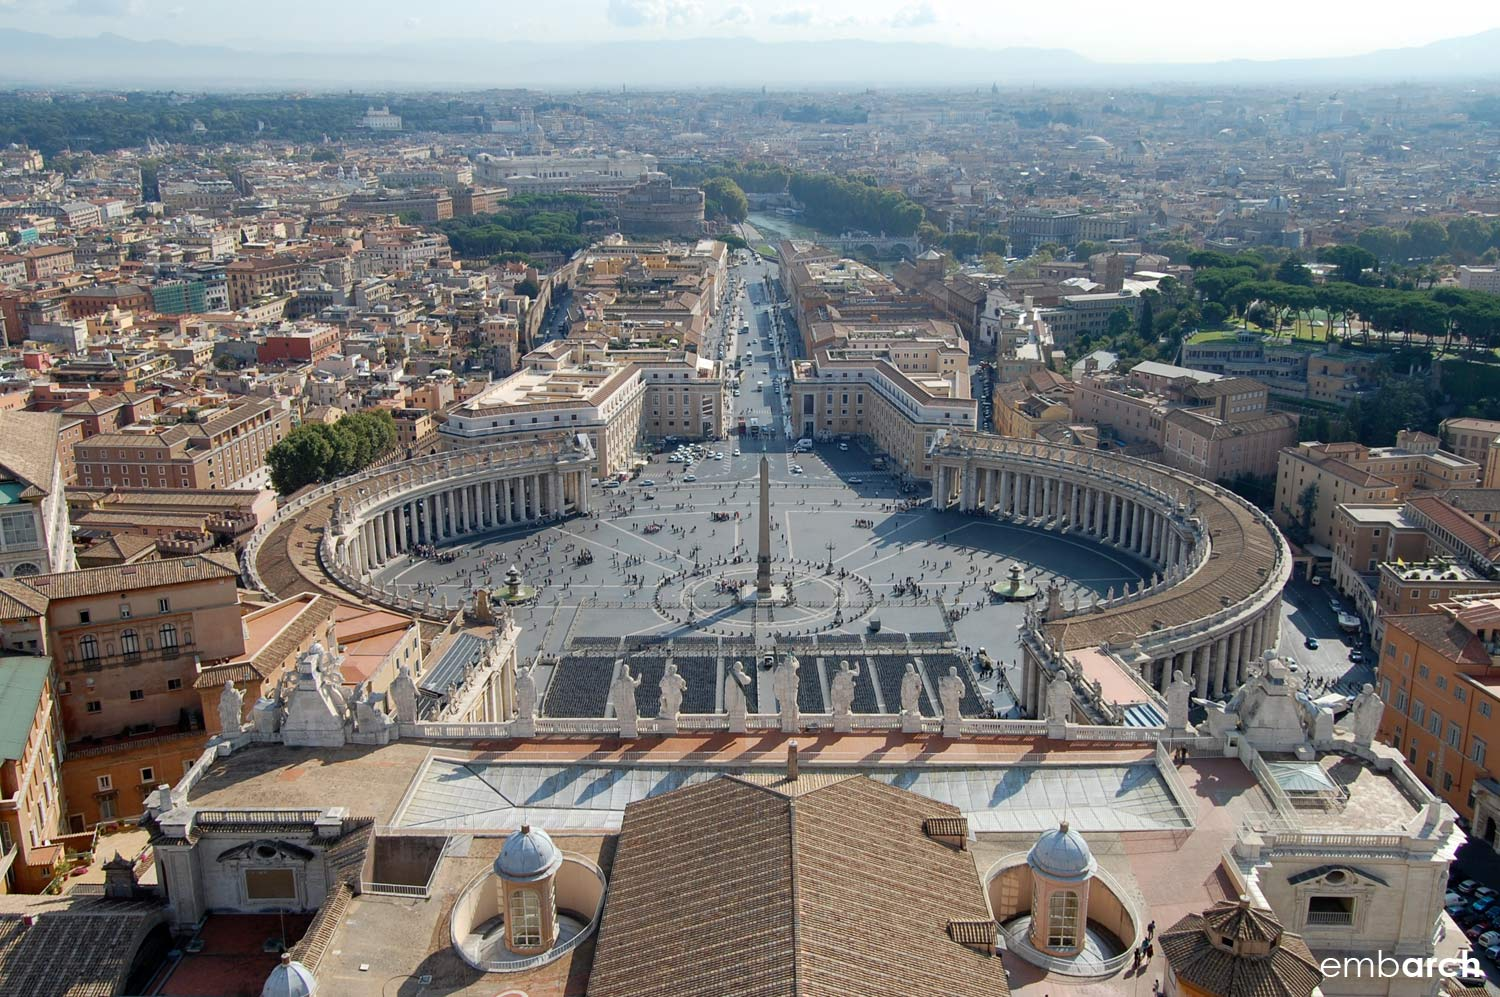 St. Peter's Basilica - view of Rome from basilica dome.